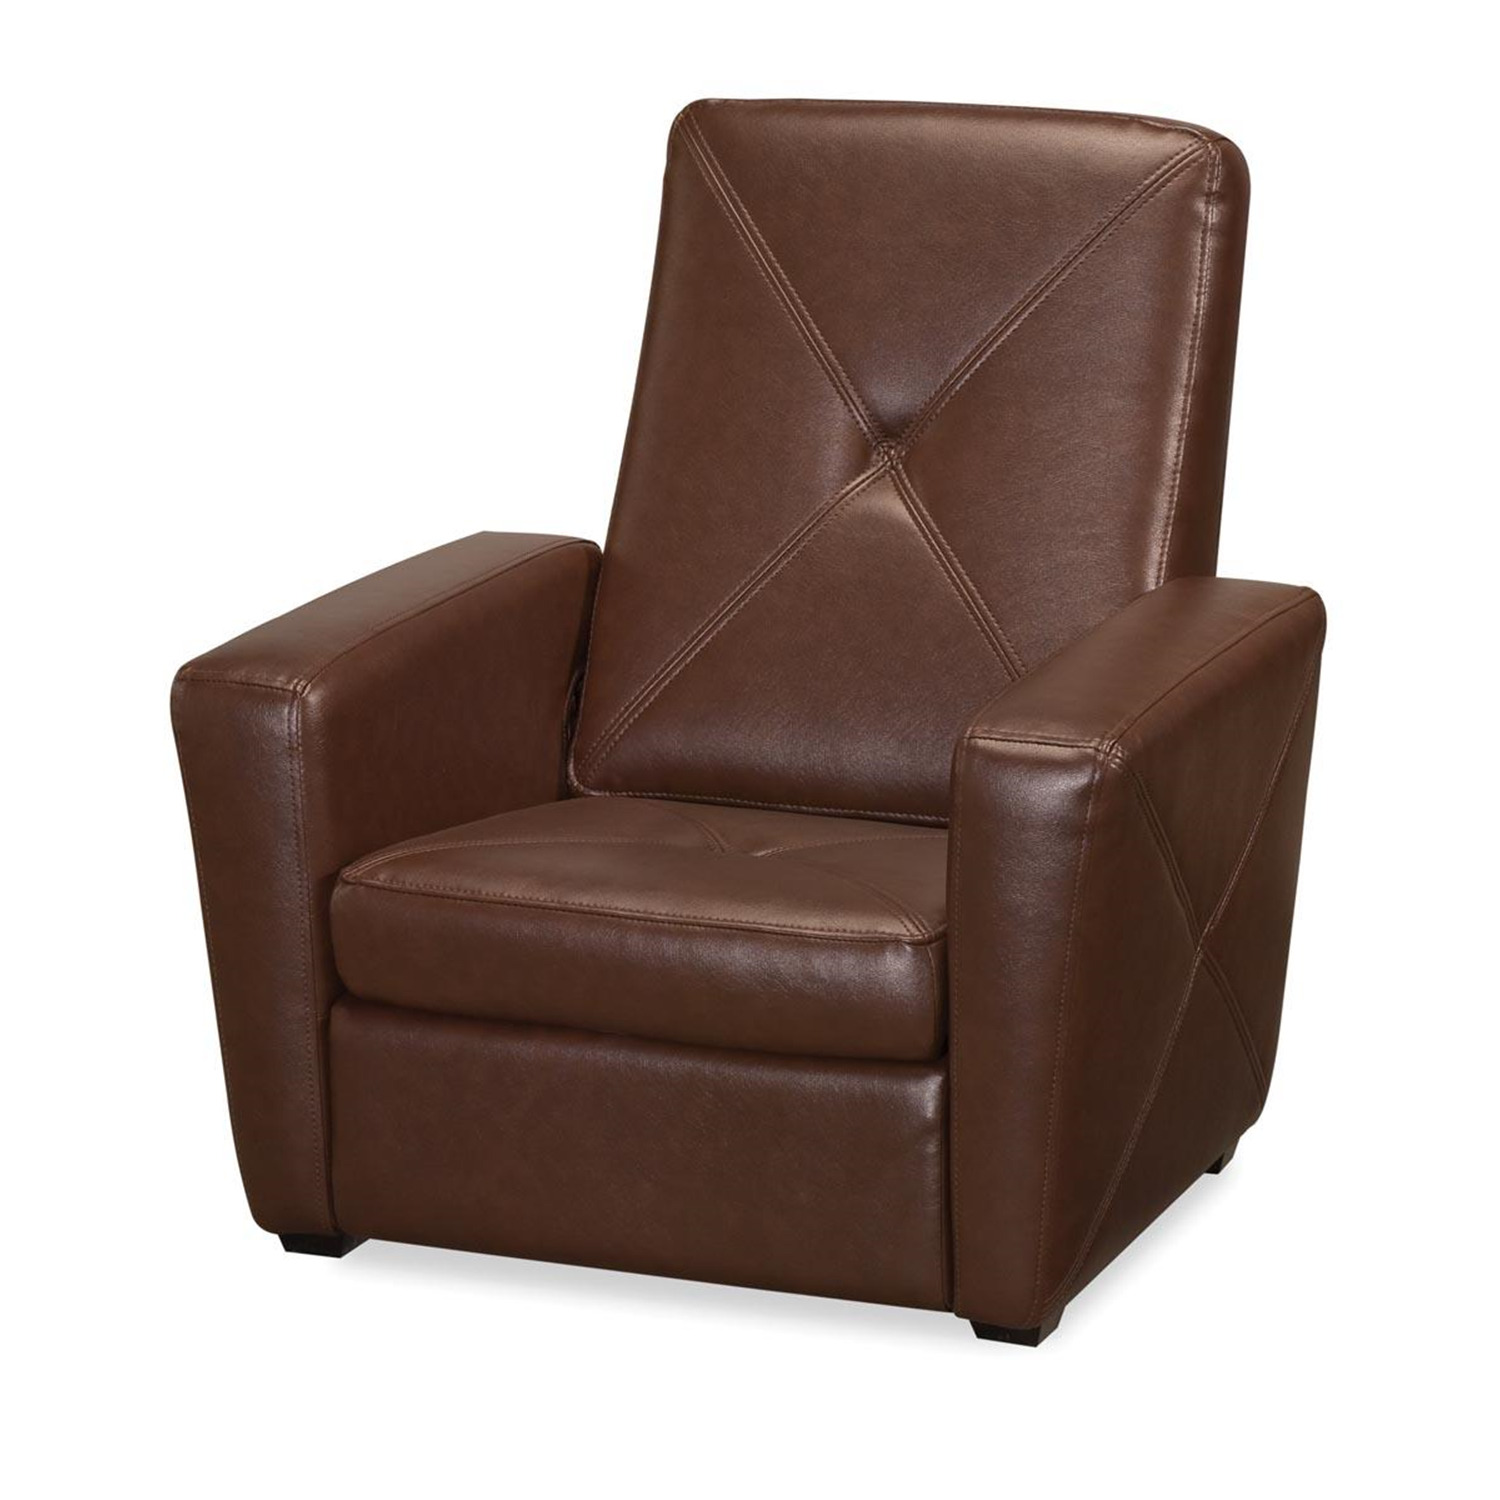 Home Styles Brown Vinyl Gaming Chair Amp Ottoman By Oj